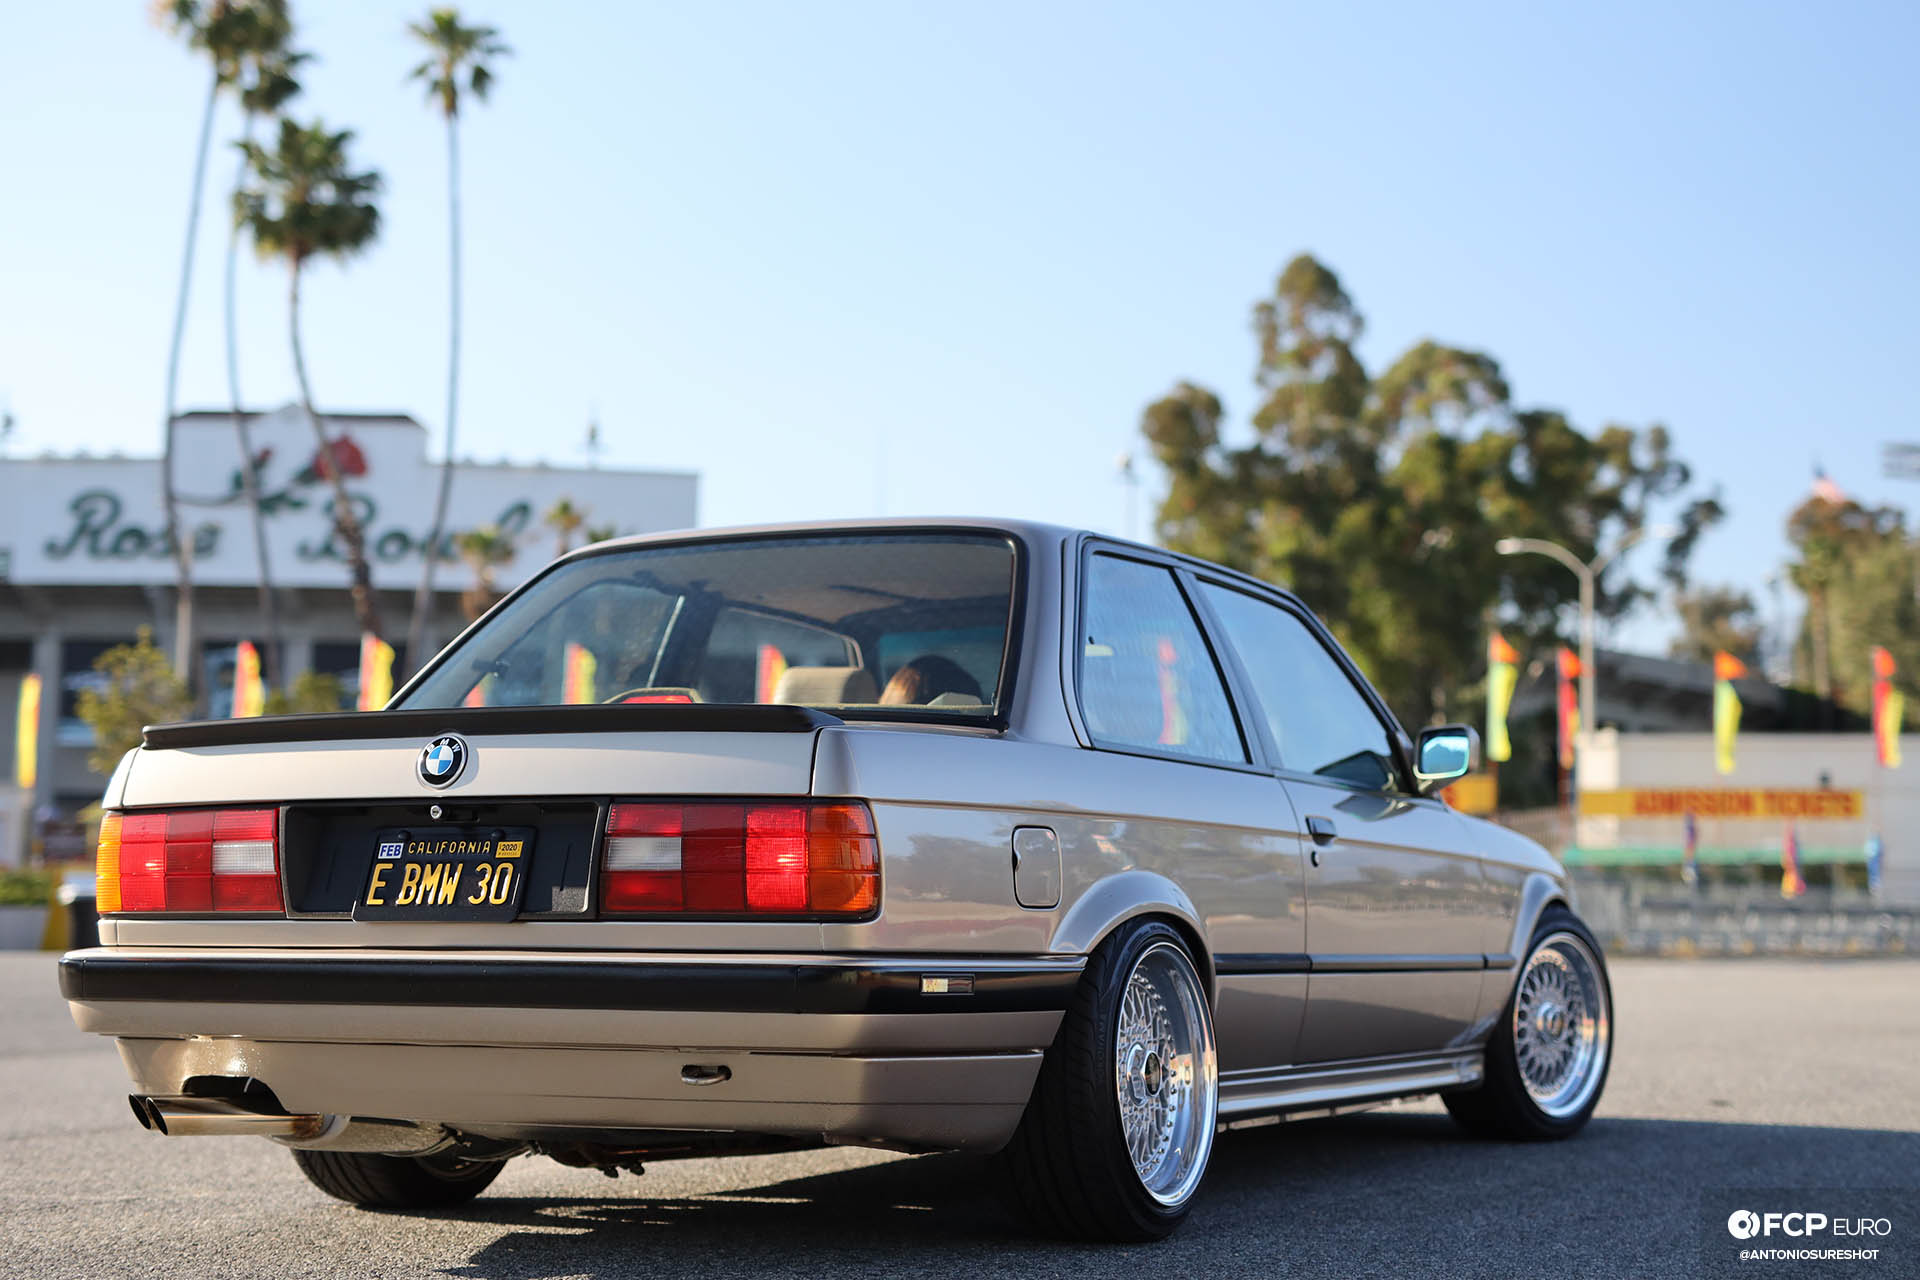 E30 1991 BMW 325i BBS RS BMWCCA Bimmerfest M20 Ireland Engineering